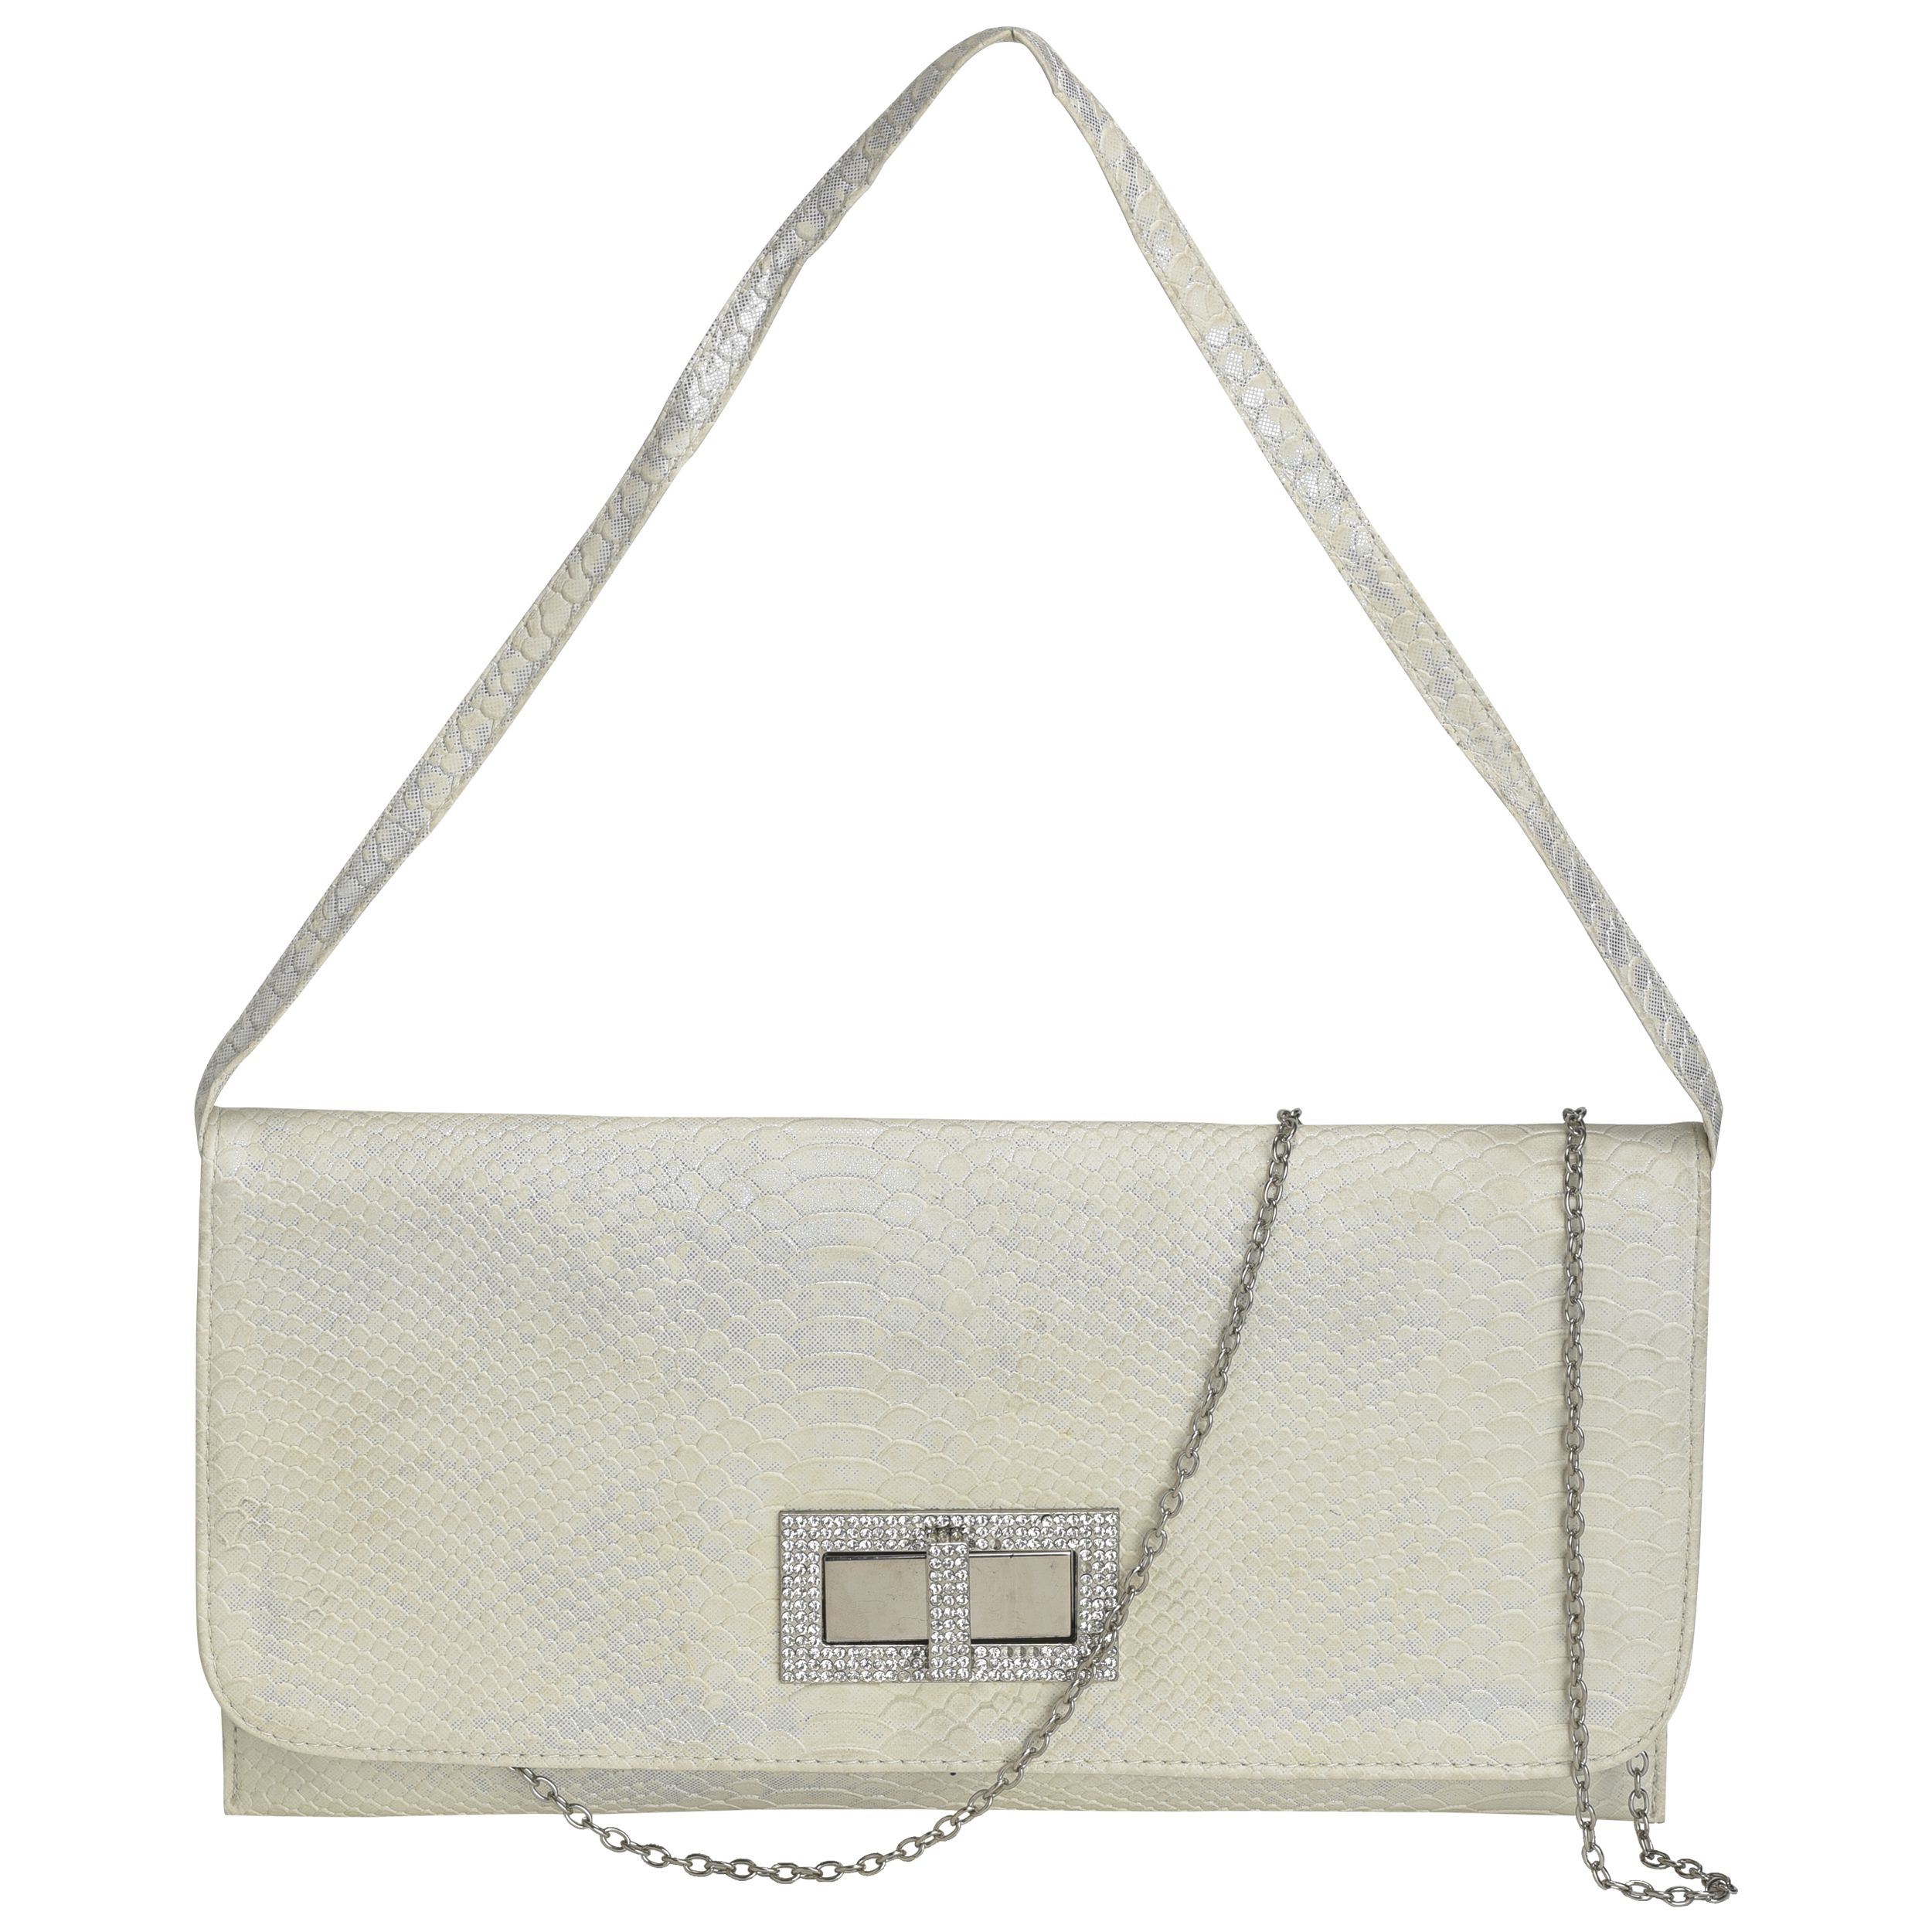 Ft Silver Artificial Leather Sling Bag